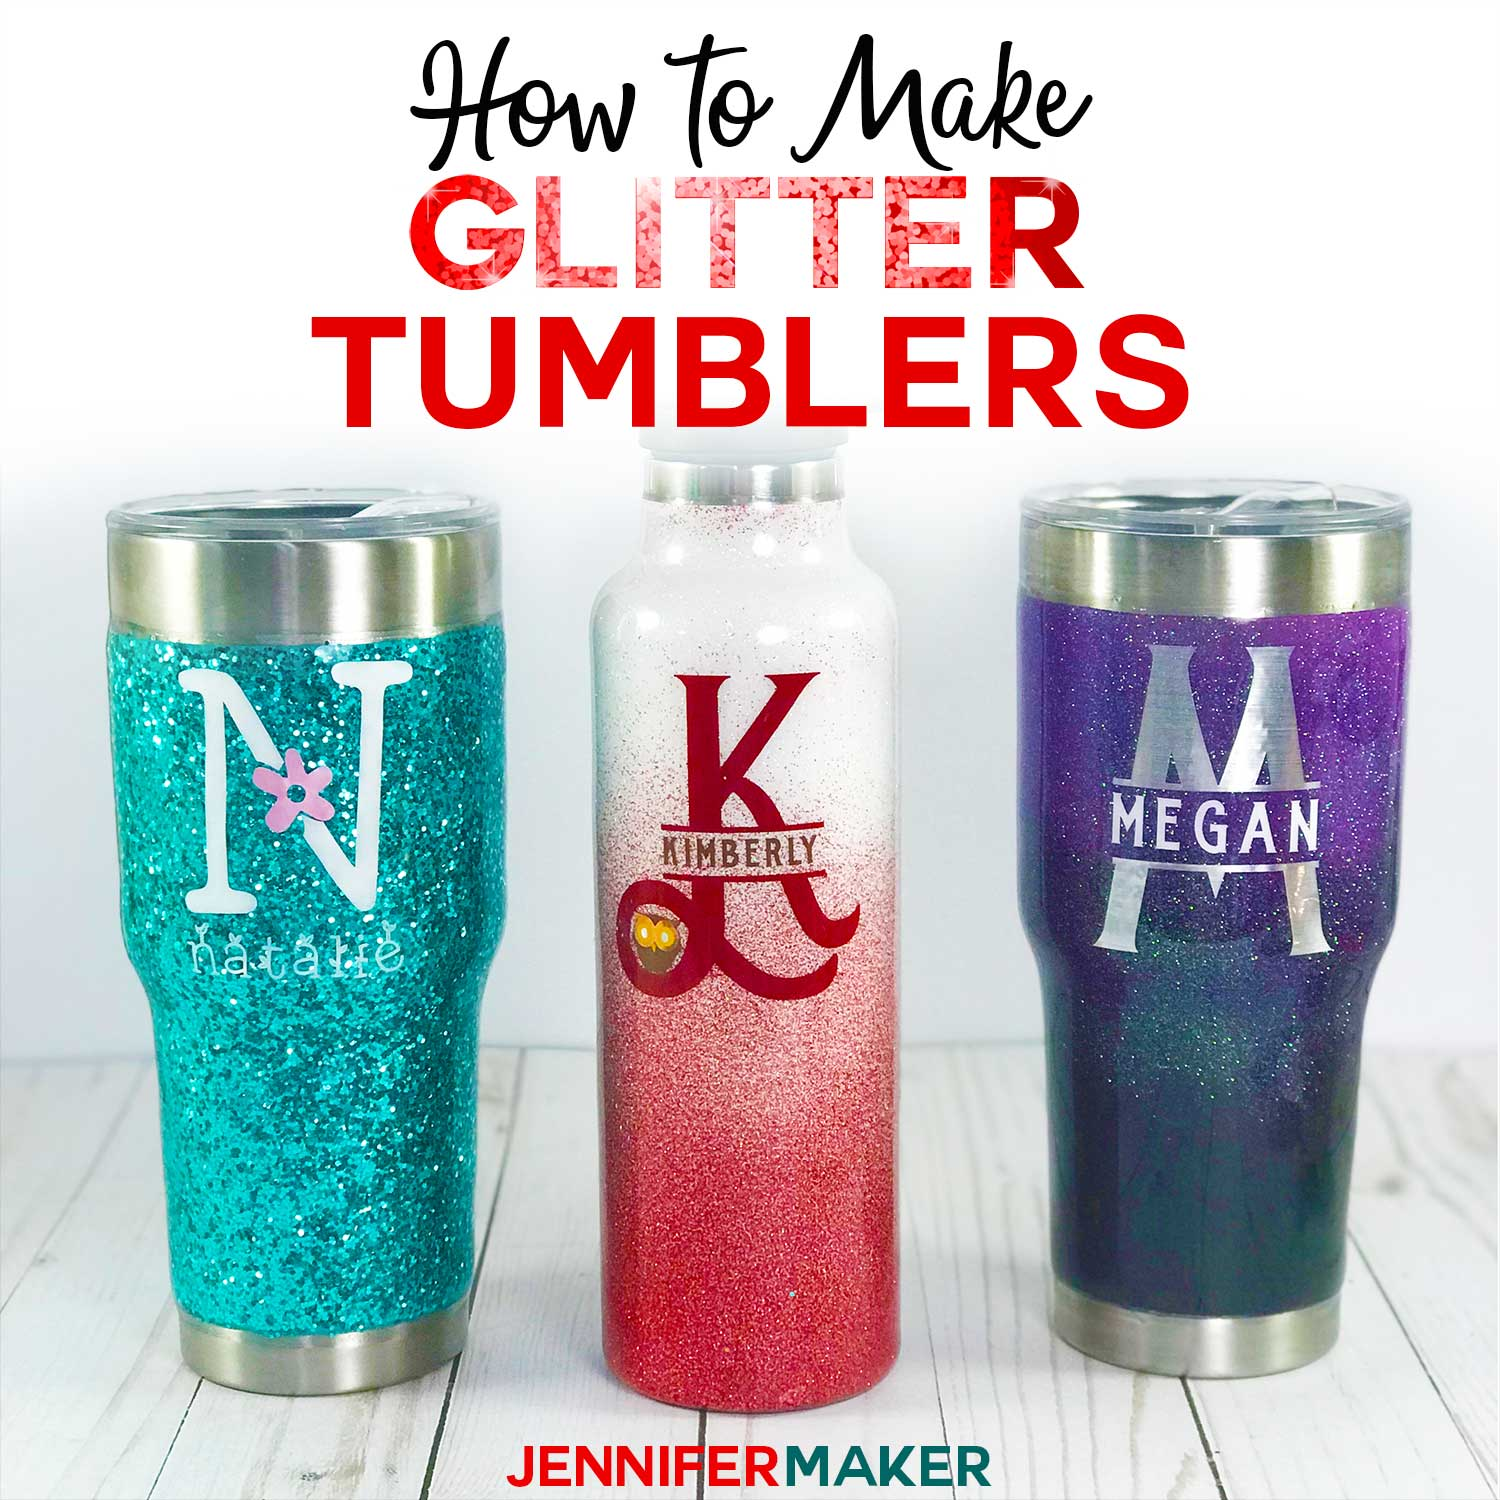 How To Make Waterslide Decals With Cricut